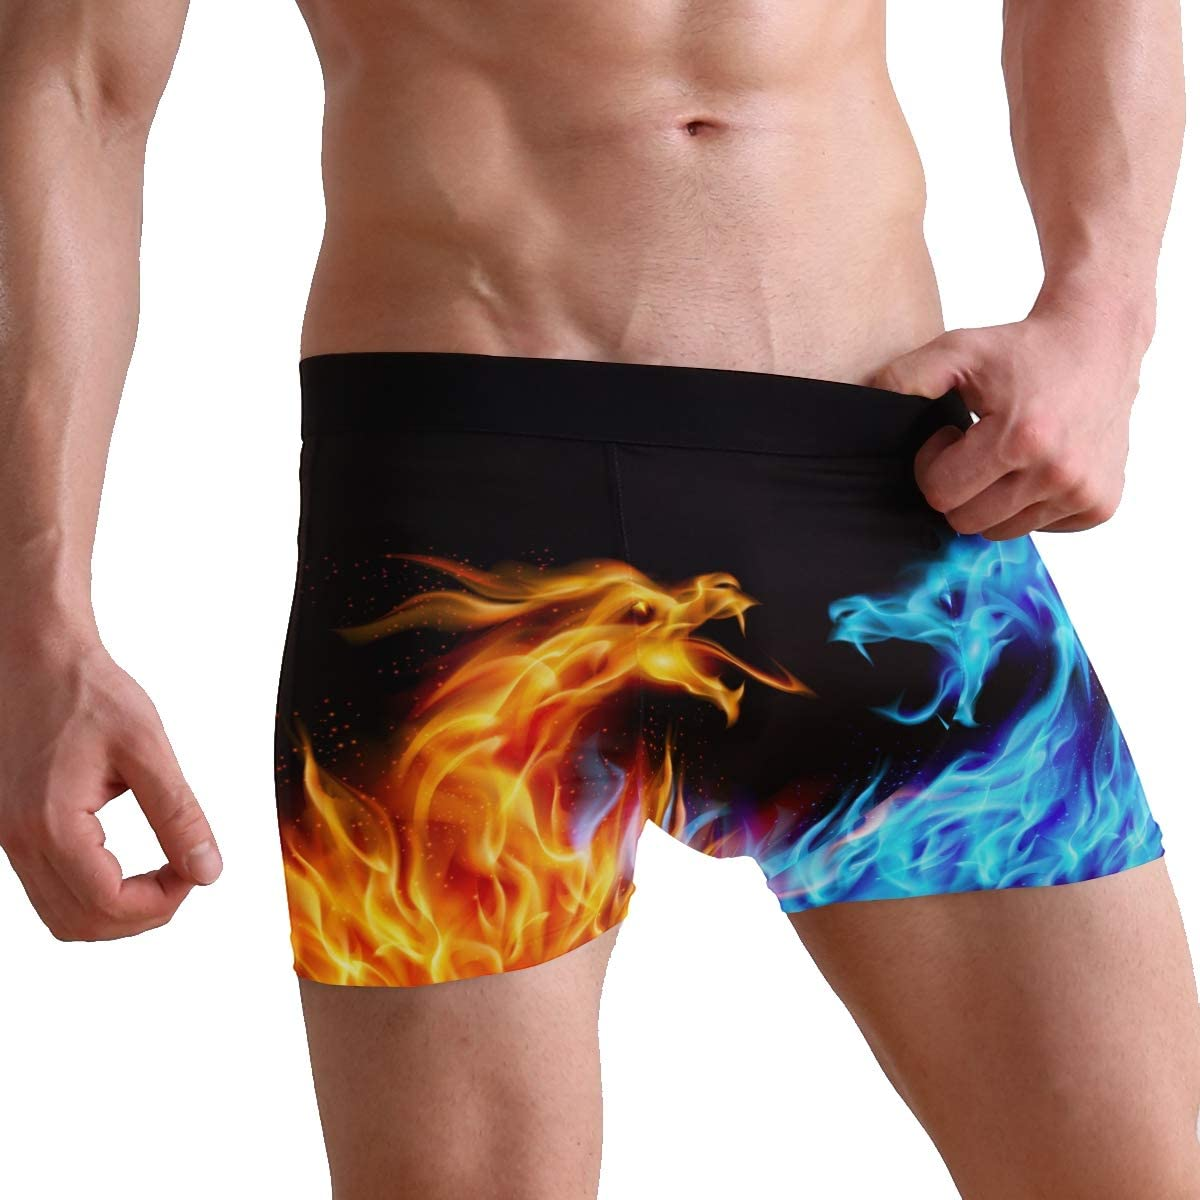 Anyako Boxer Brief Cute Wallpaper and Screensavers Personalized Underwear Comfort Breathable Hipster for Men Boys